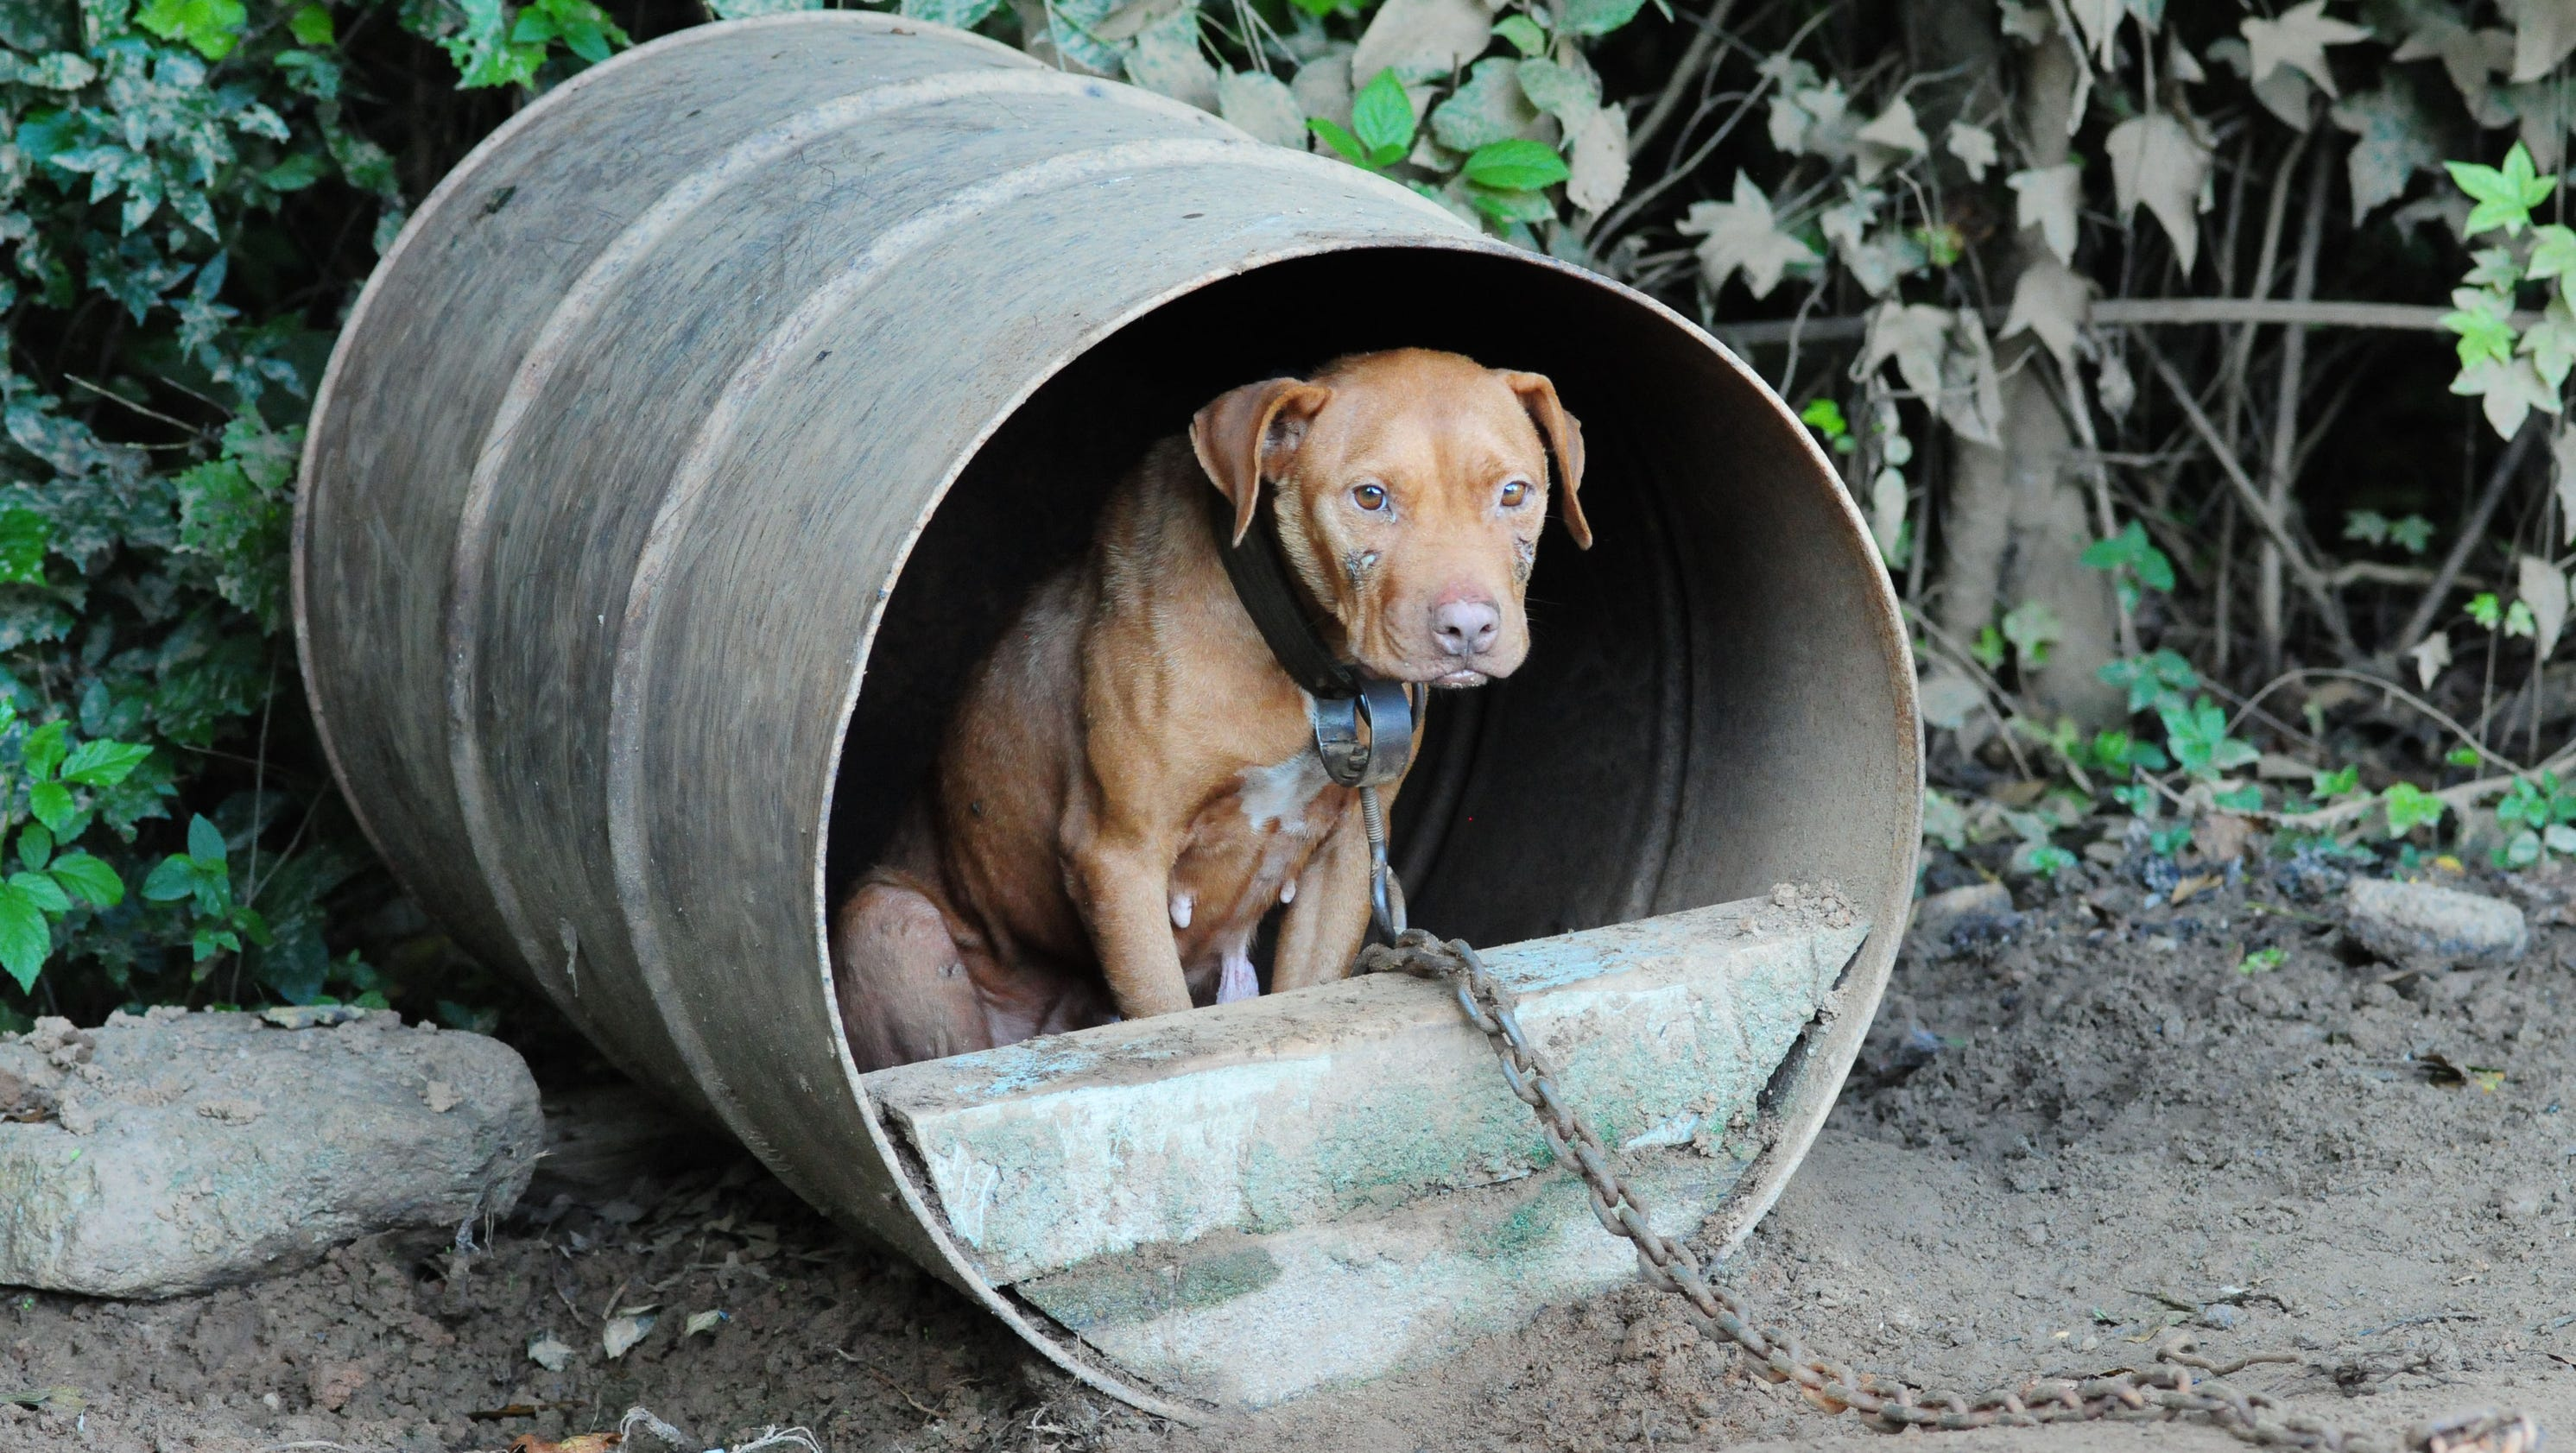 367 dogs rescued in raids of dog-fighting operations